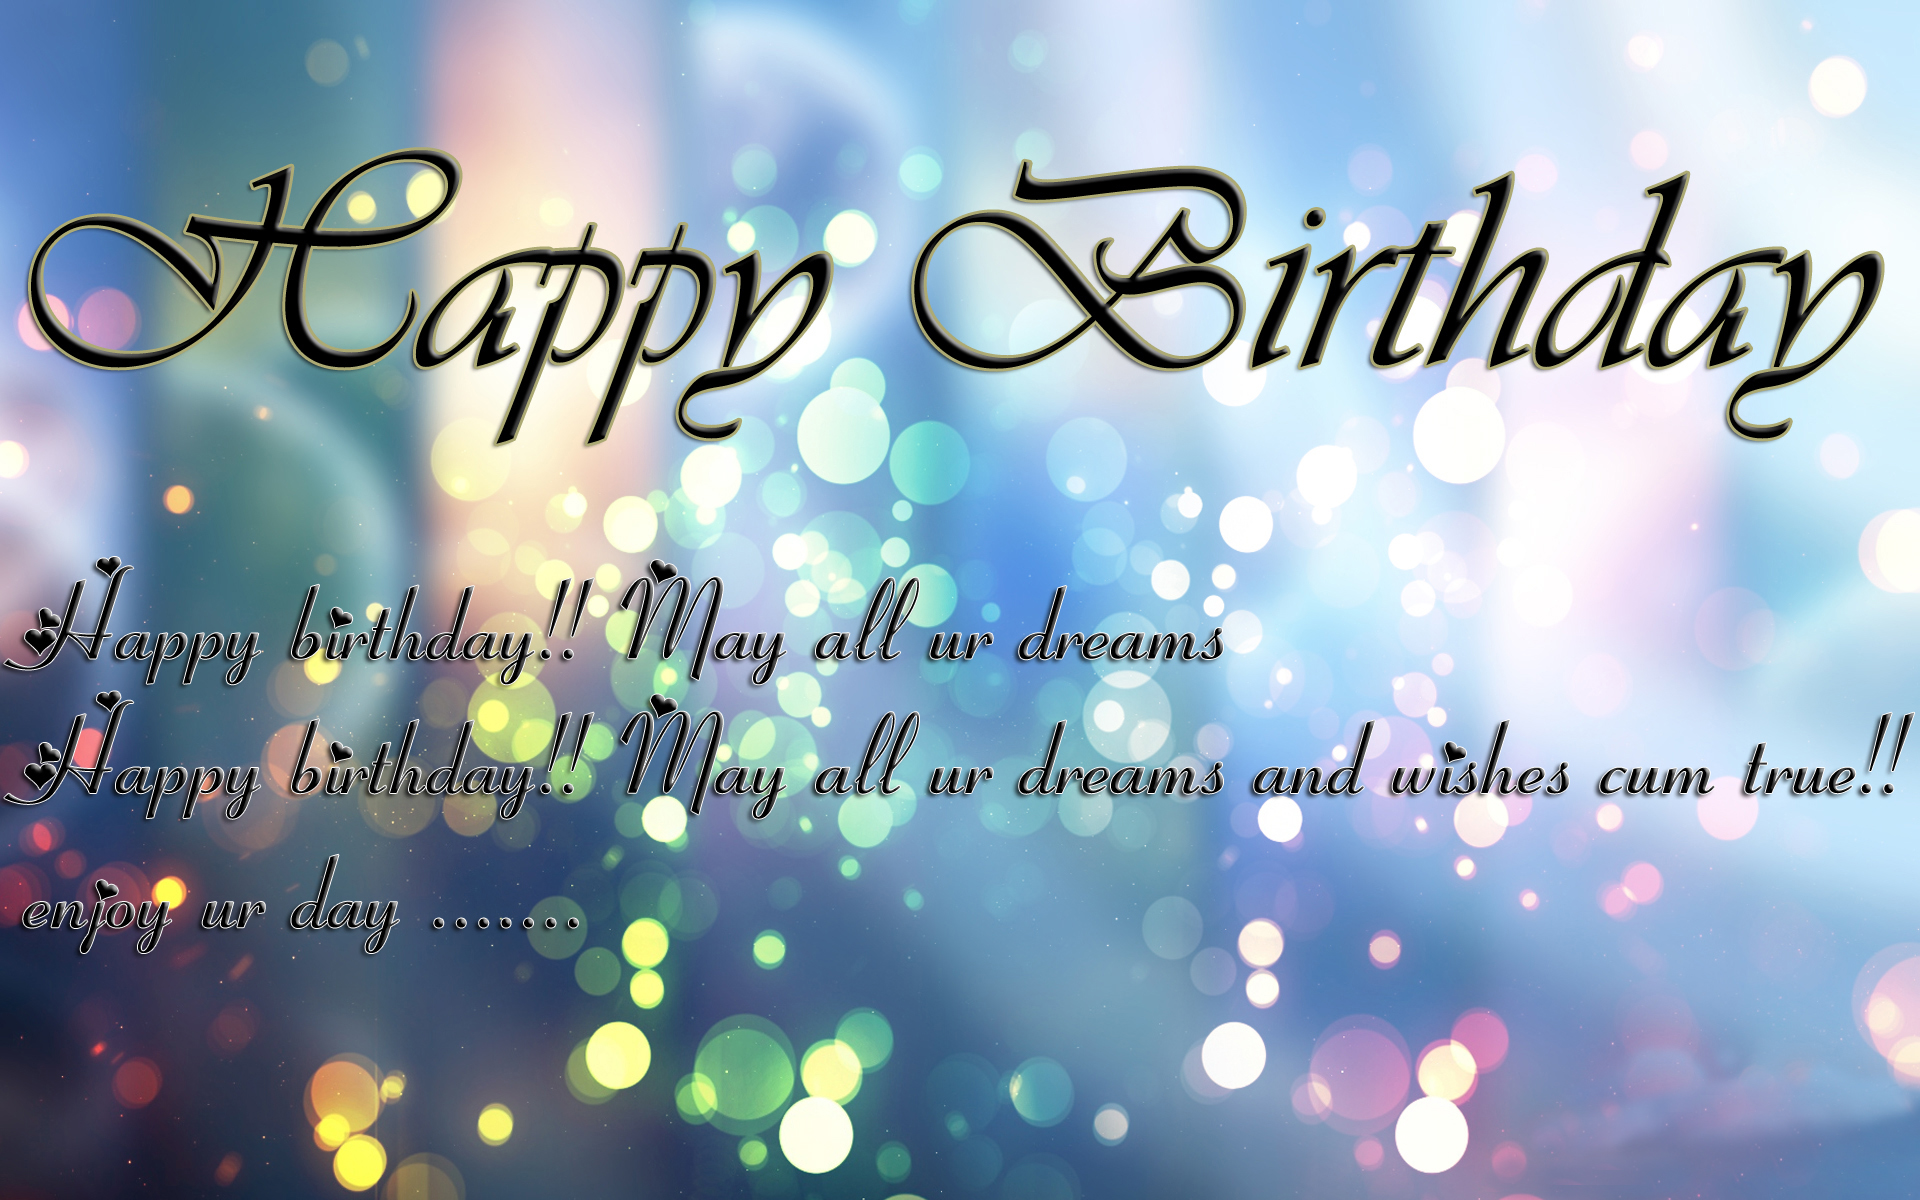 happy birthday wishes greeting cards images ; Happy-birthday-wishes-for-lover-7